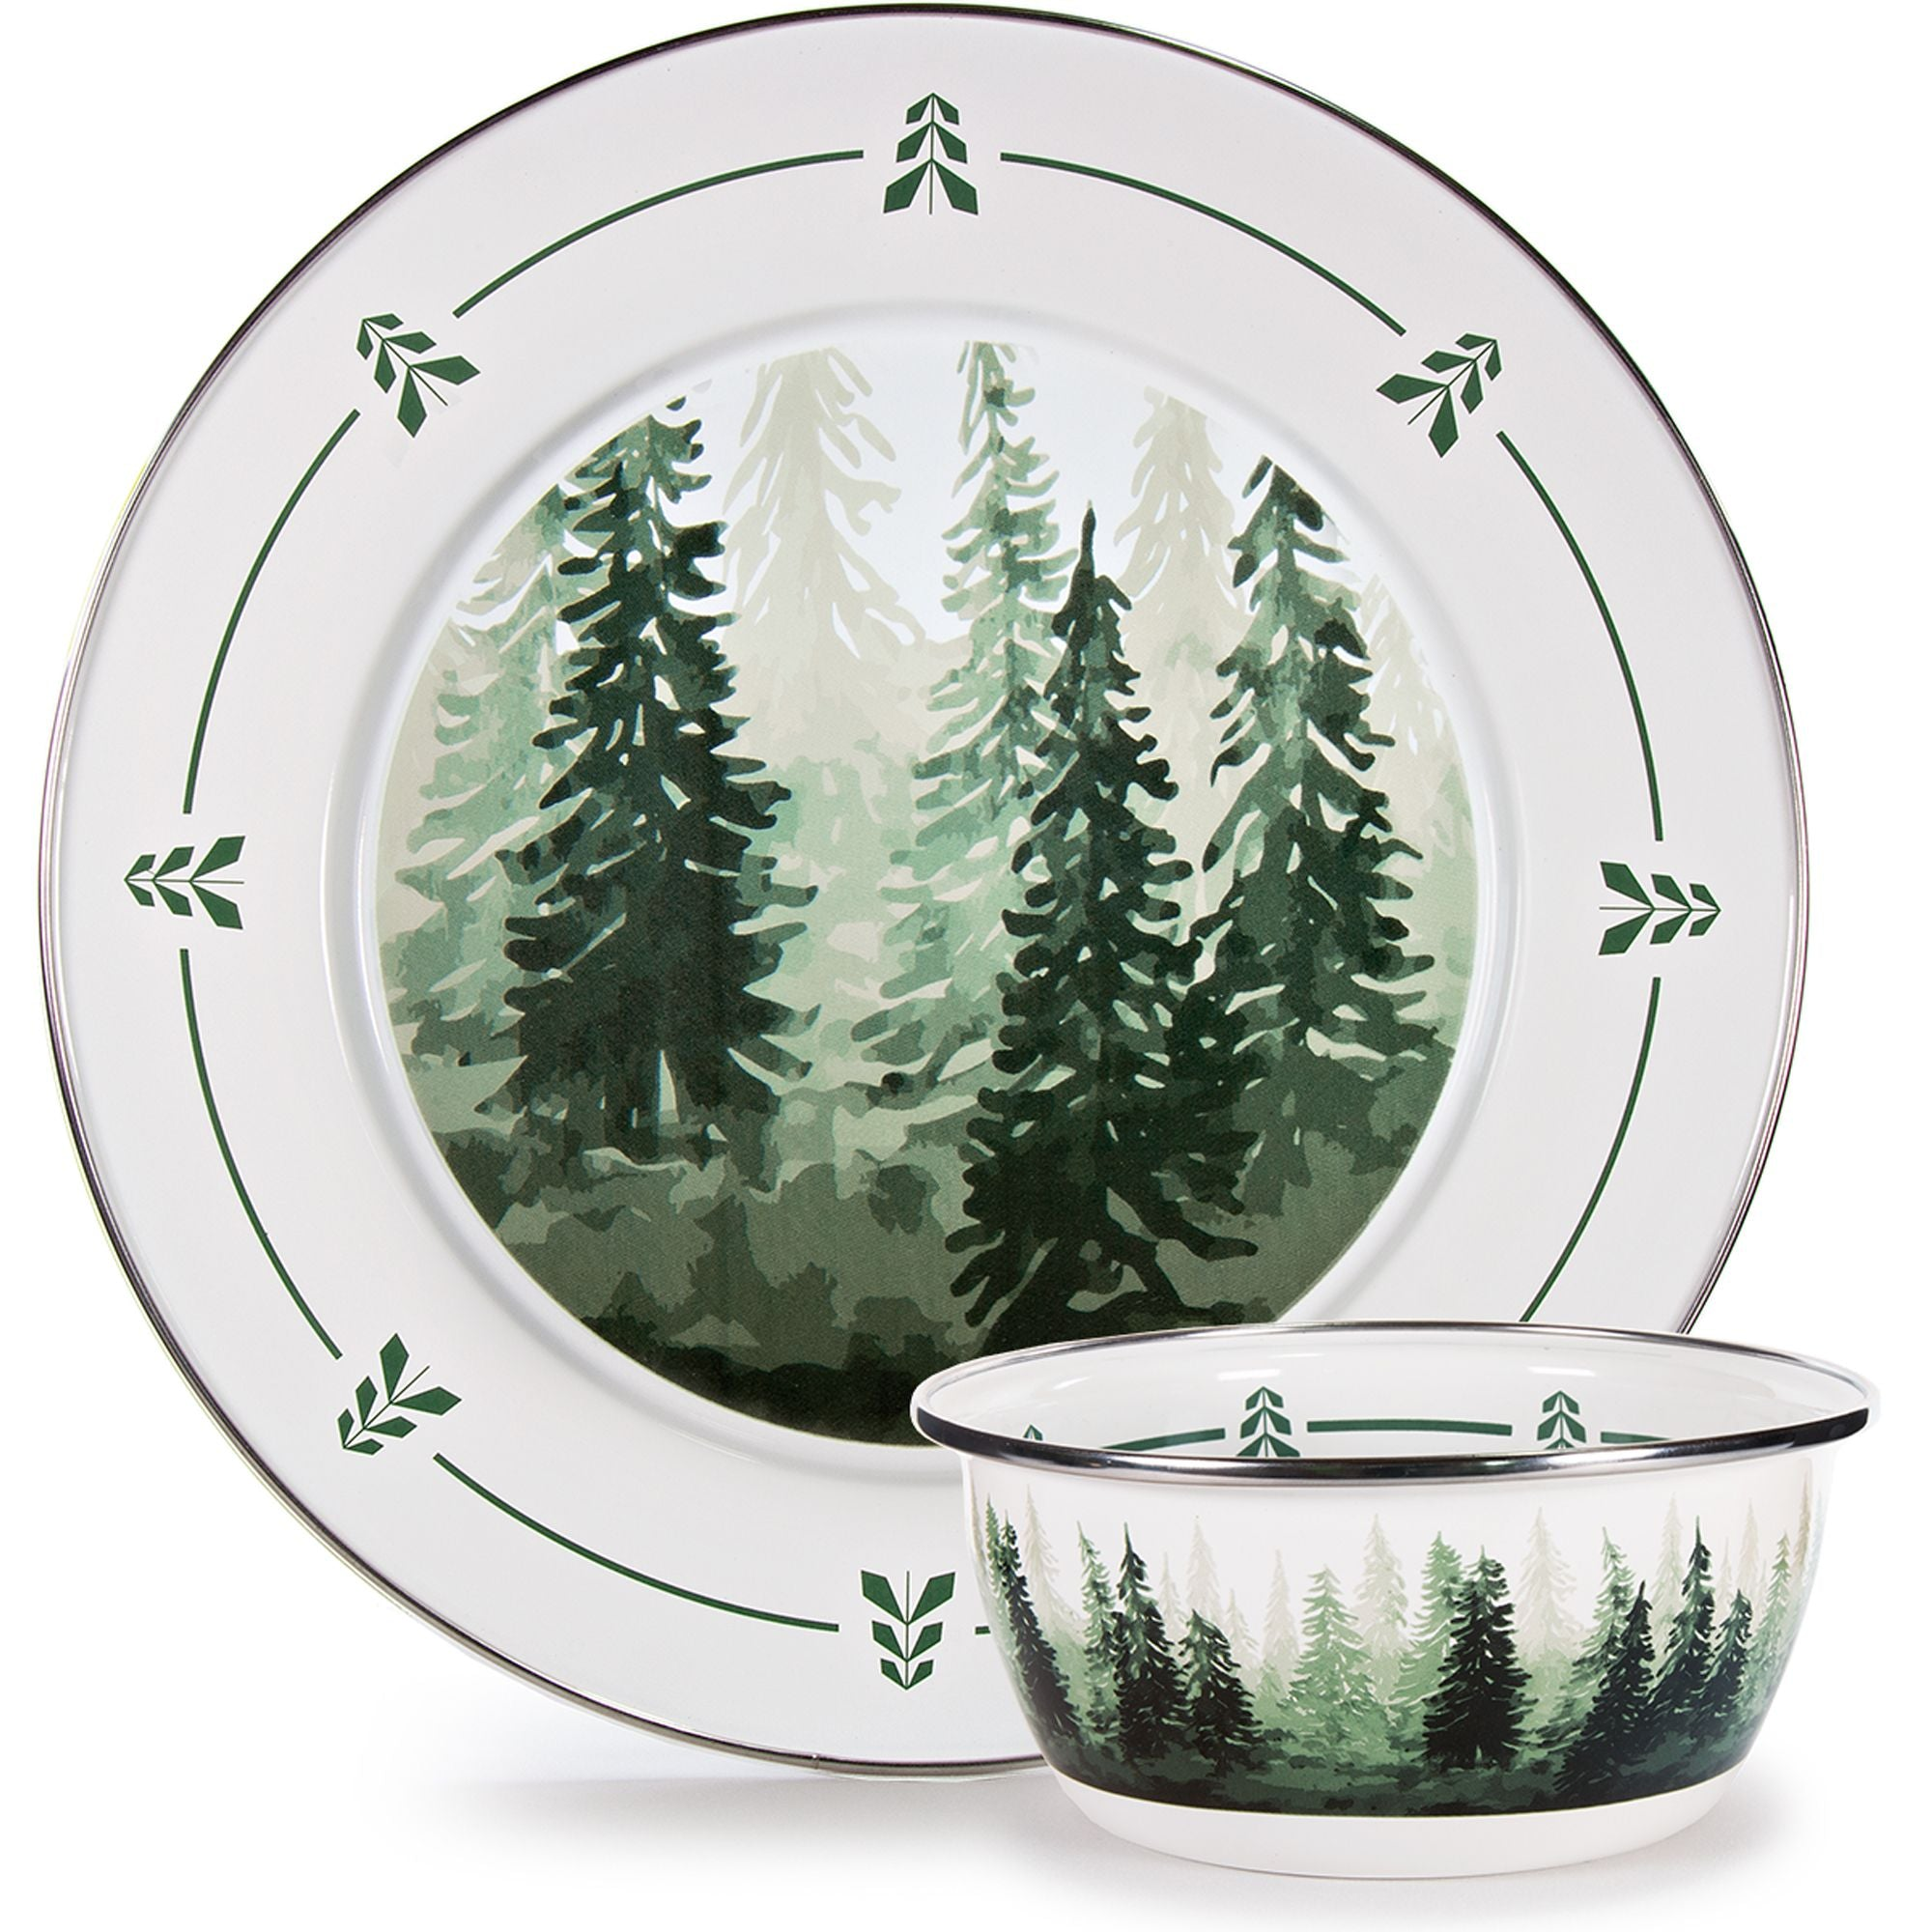 FT65 - Forest Tree Pattern - Enamelware Dip Set